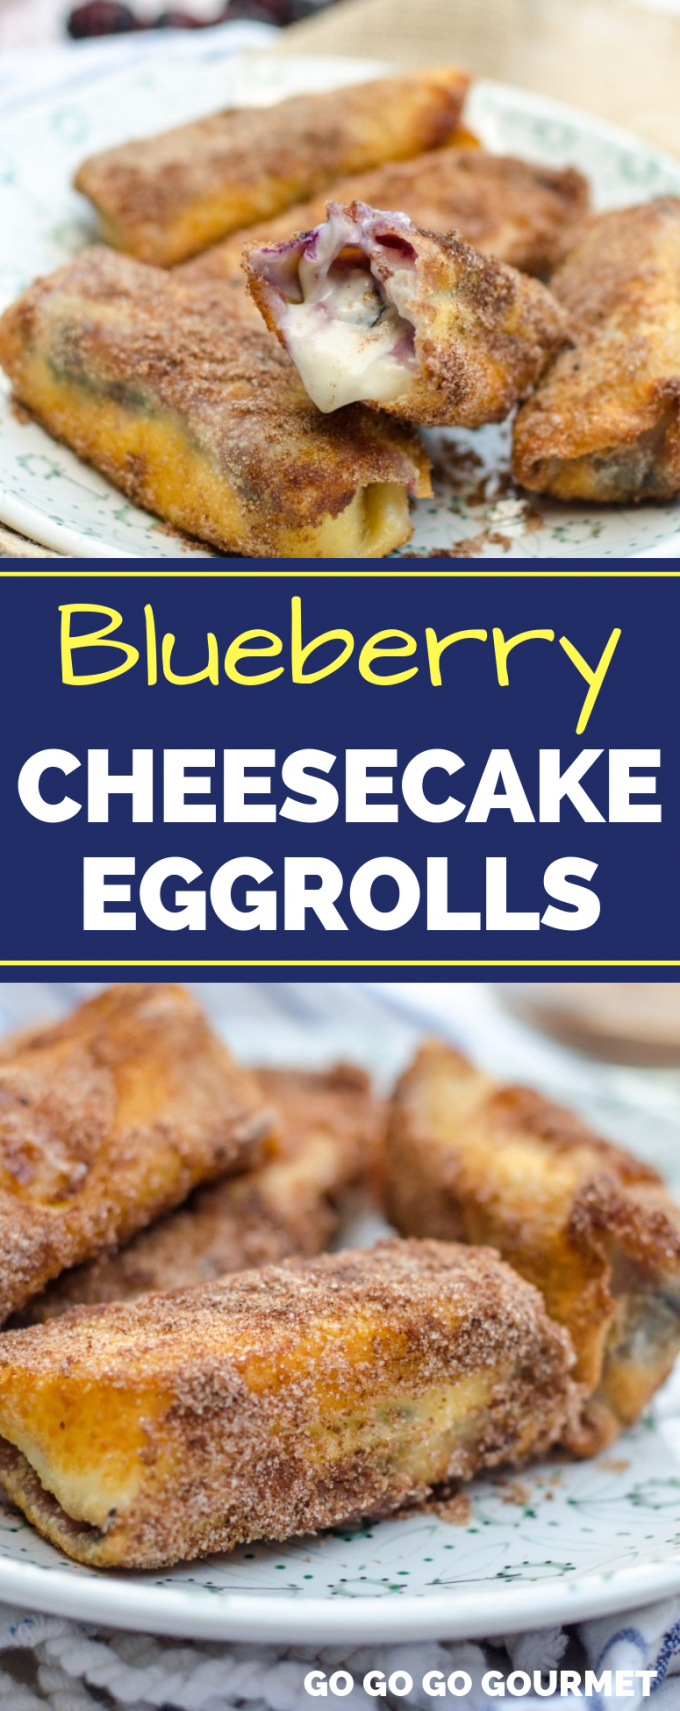 A cross between a cheesecake and an elephant ear, these easy, fried desserts are totally delish! These No Bake Blueberry Ricotta Cheesecake Eggrolls would be even better served with a strawberry dipping sauce or even whipped cream! #gogogogourmet #cheesecakeeggrolls #nobakedesserts #blueberrycheesecakeeggrolls via @gogogogourmet